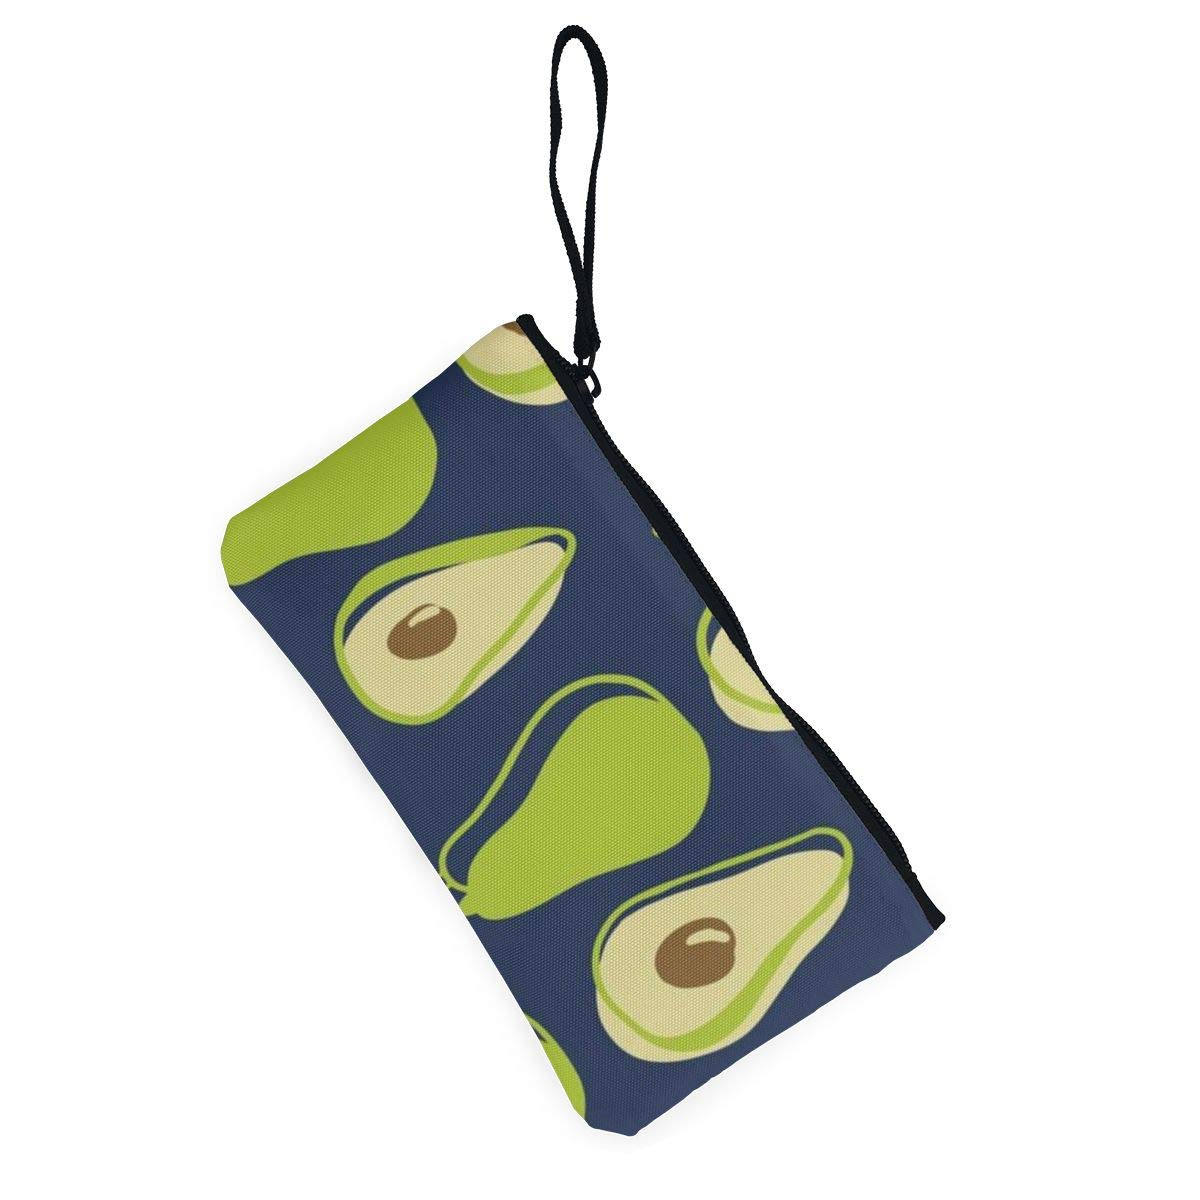 Maple Memories Avocado Floral Portable Canvas Coin Purse Change Purse Pouch Mini Wallet Gifts For Women Girls